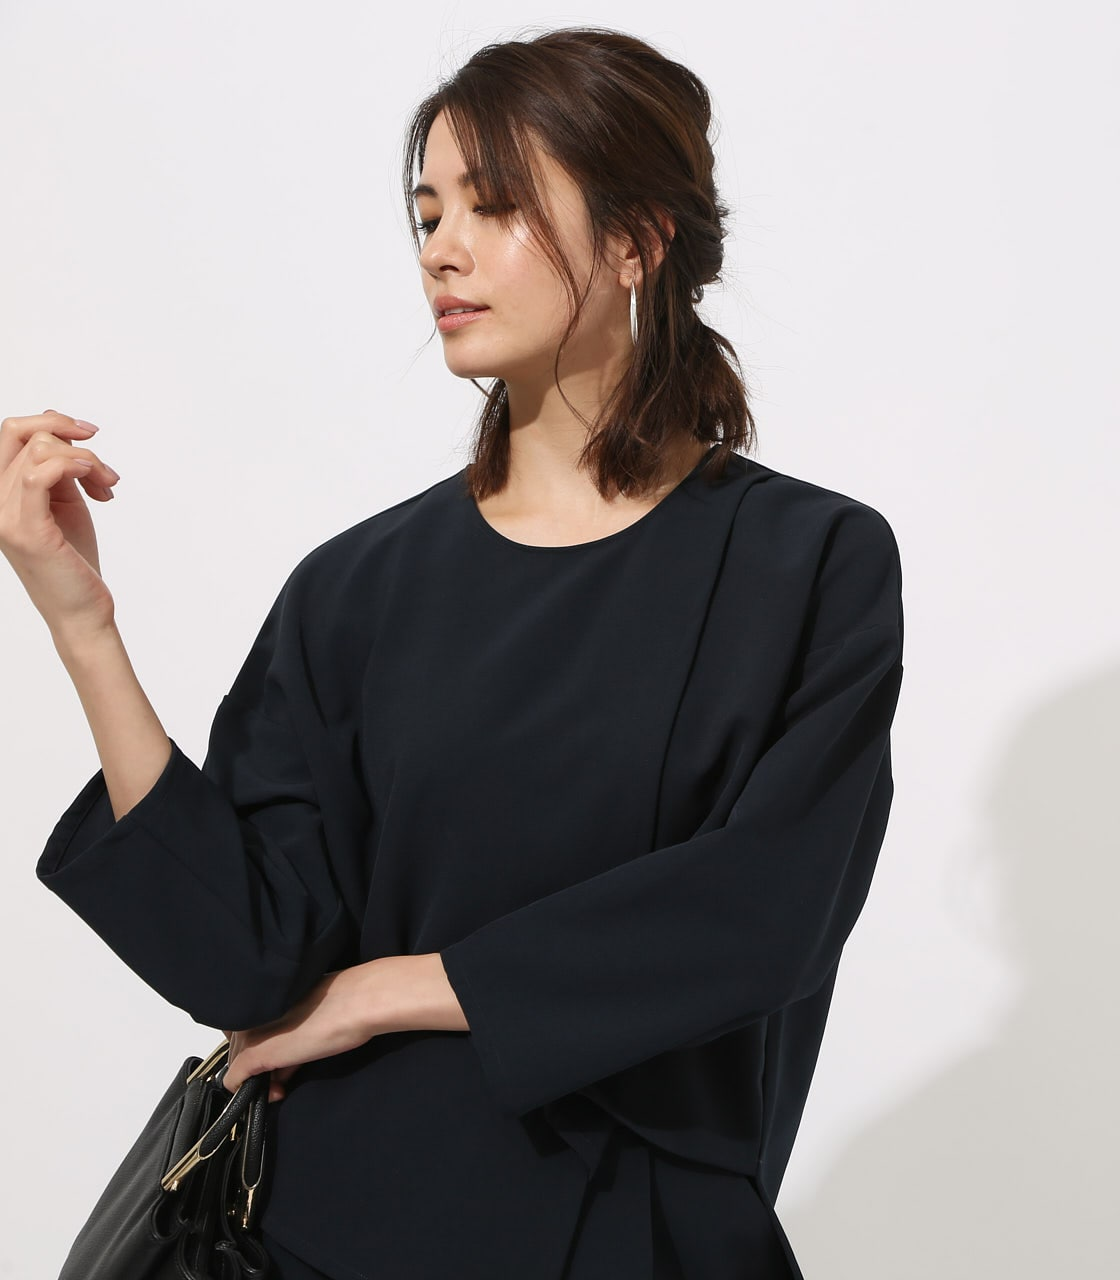 【AZUL BY MOUSSY】LAYERED IRREGULAR HEM TOPS 詳細画像 NVY 3